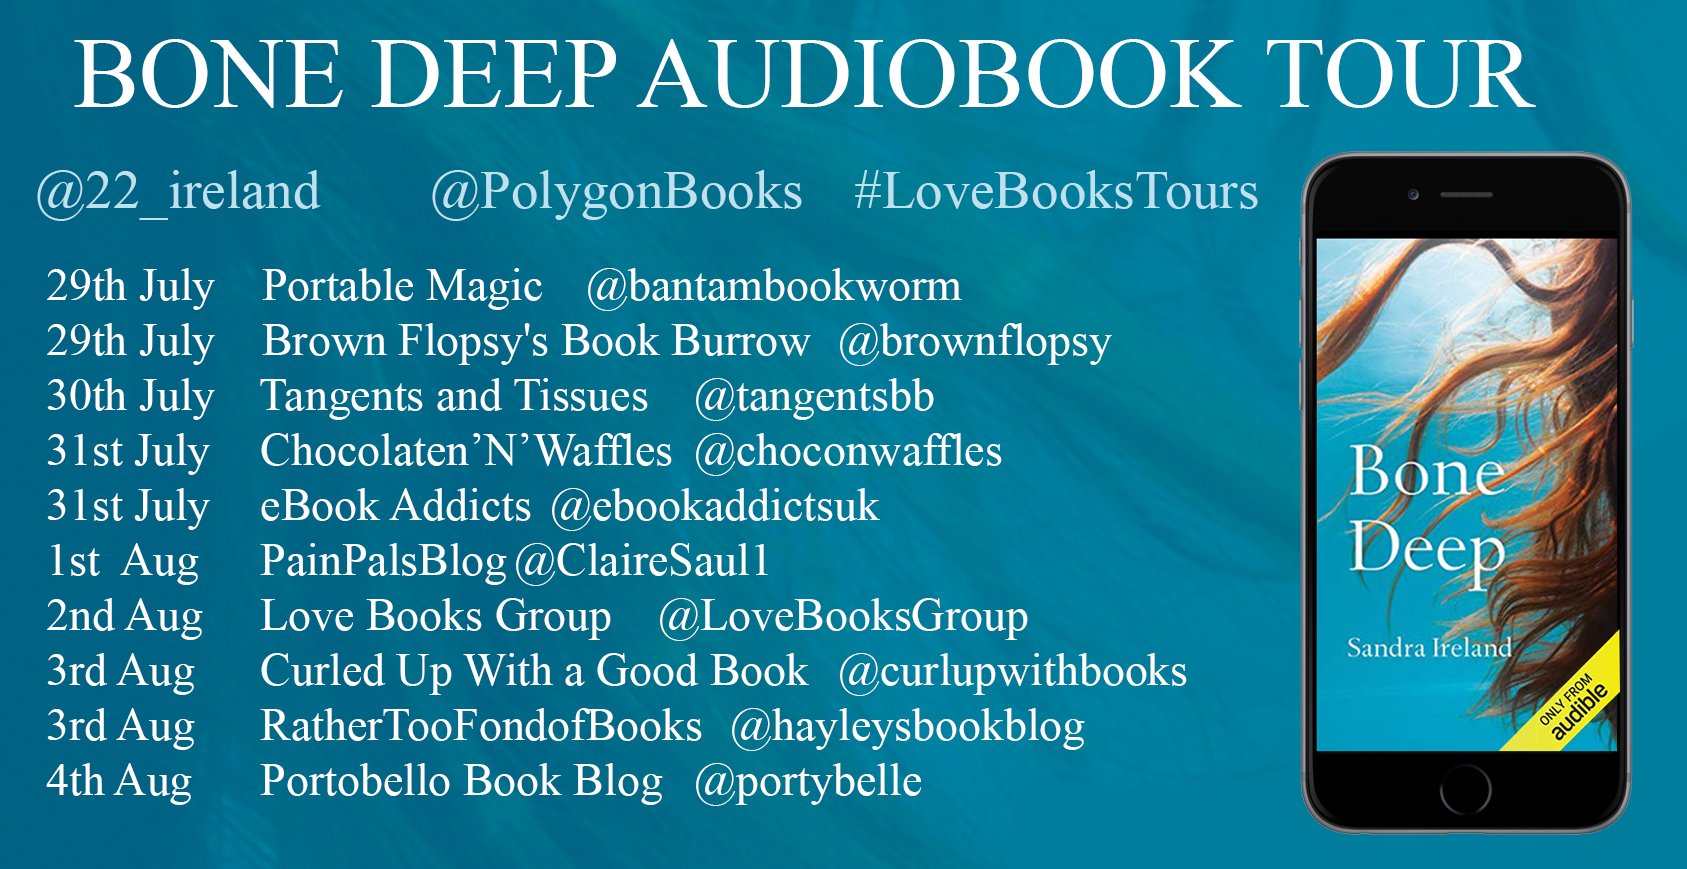 Bone-Deep-Audiobook (1)